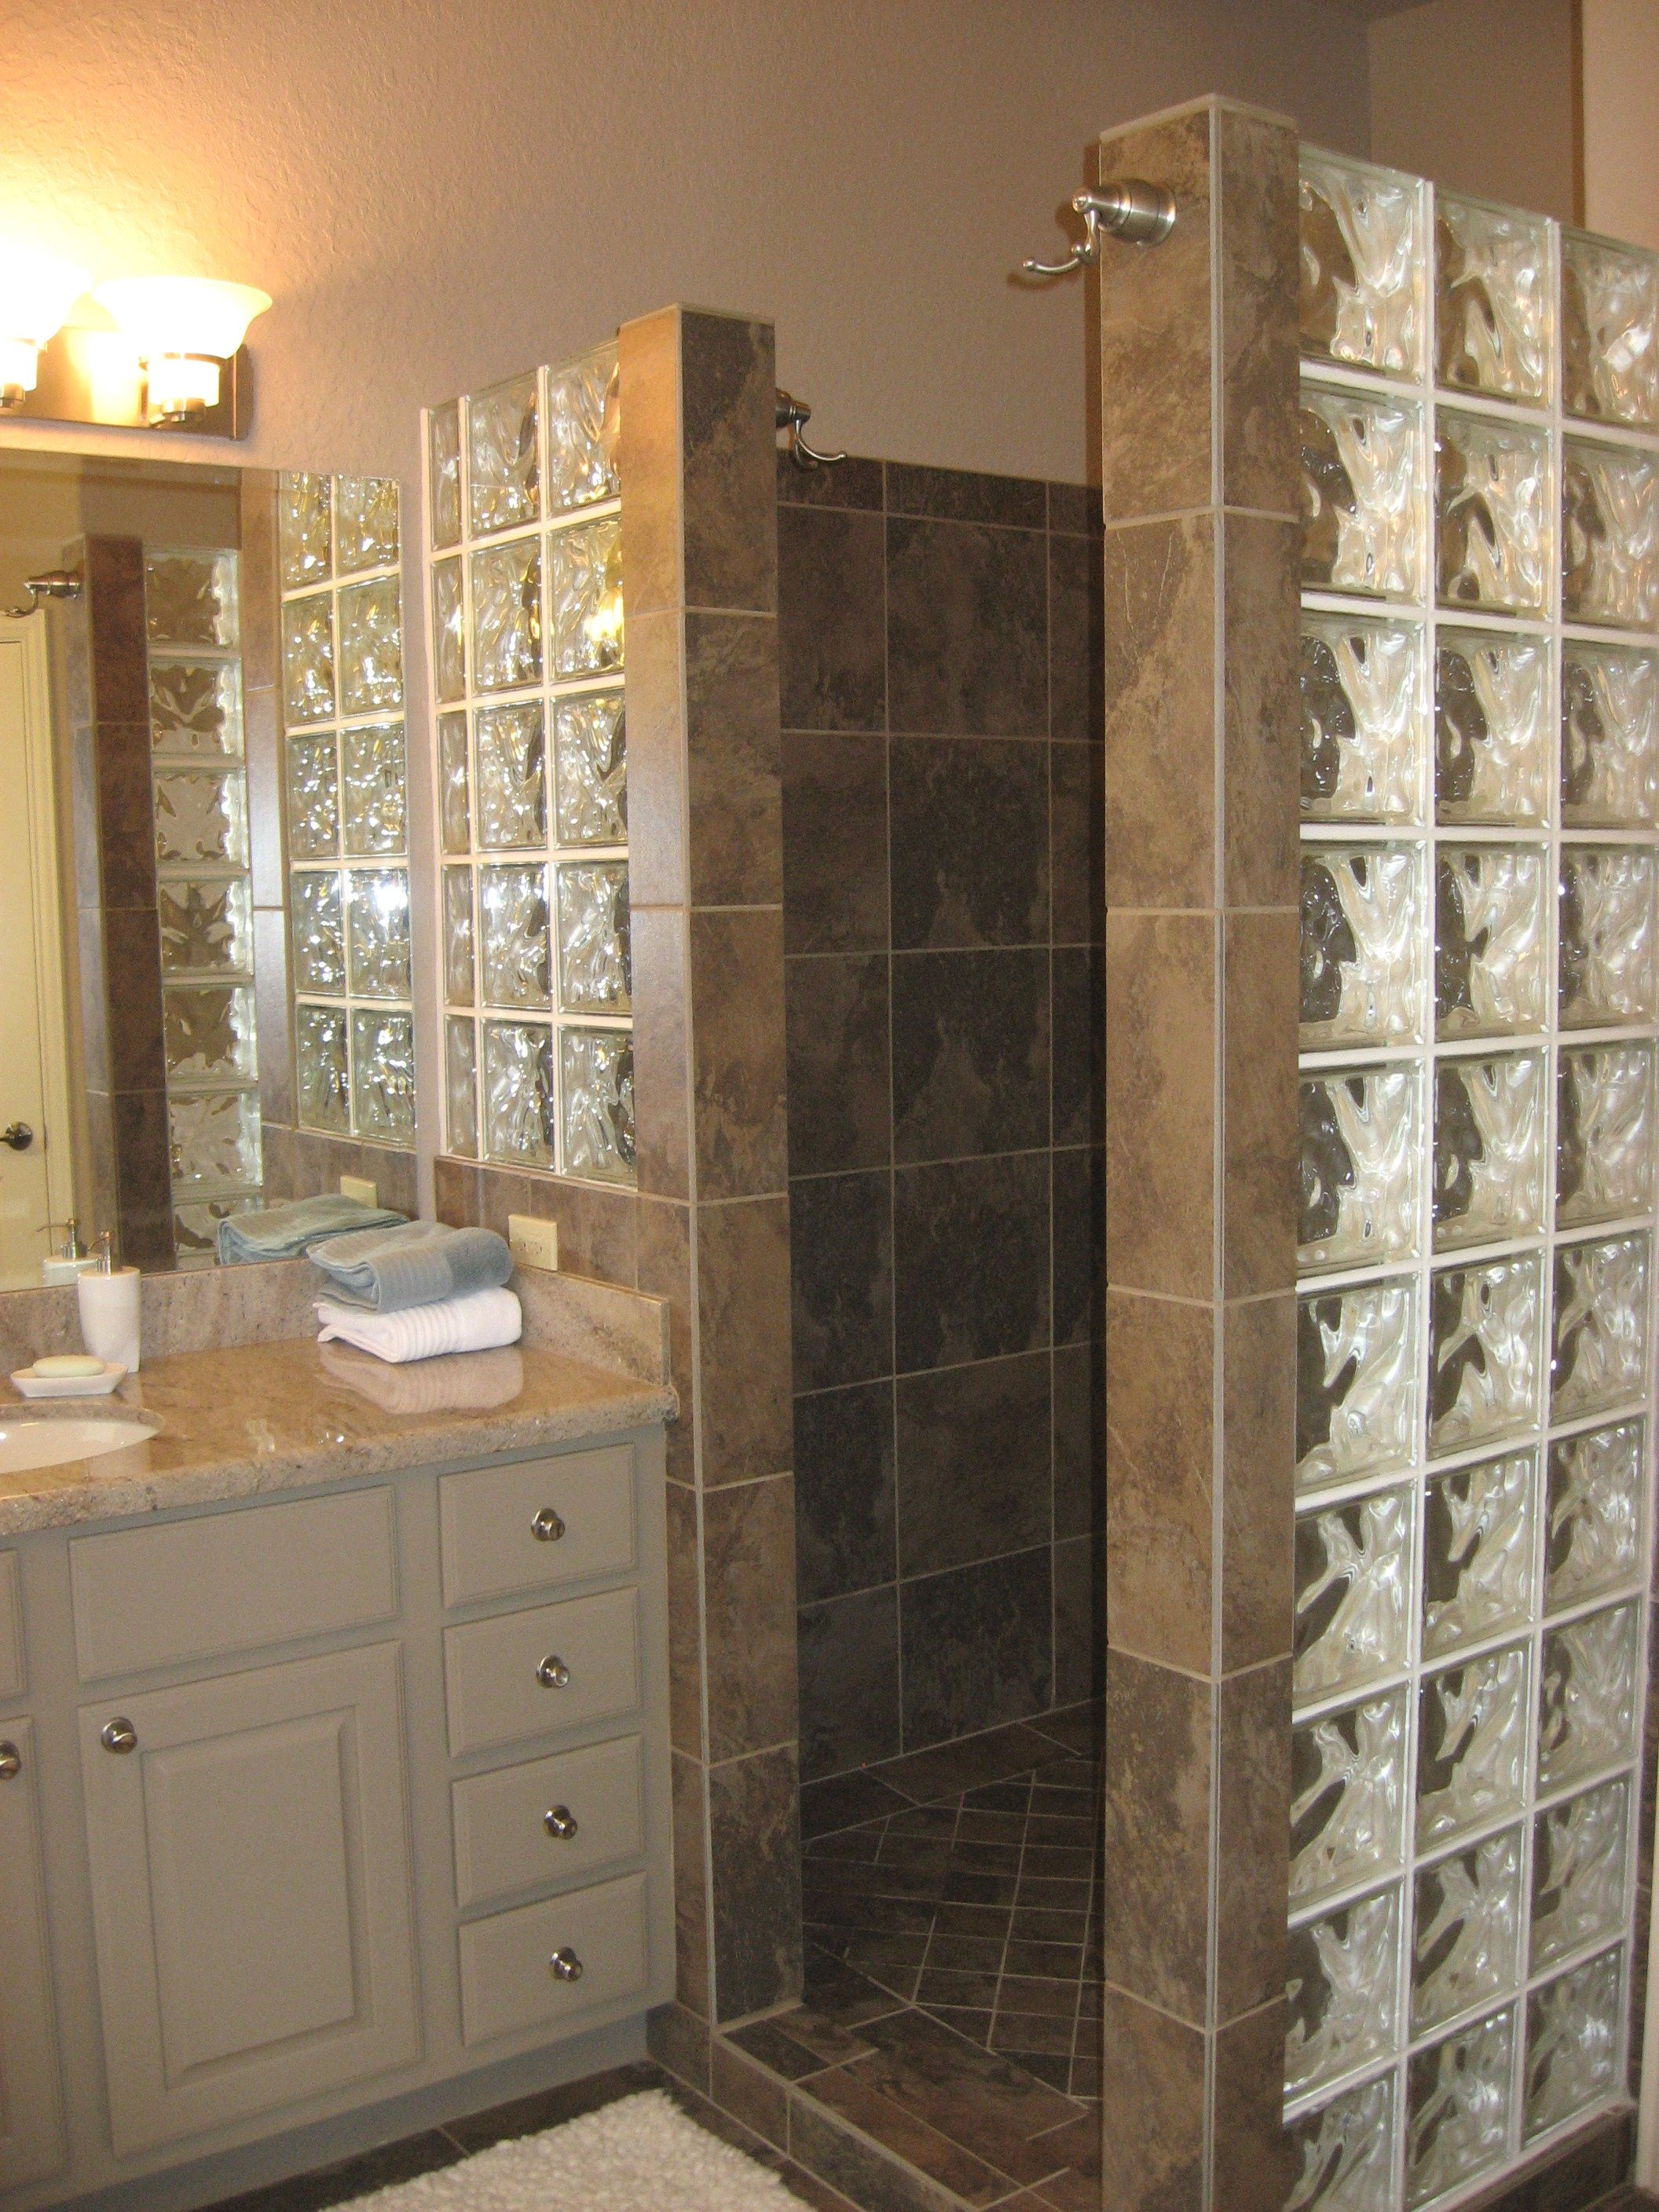 Custom Walk In Shower With No Door And Glass Block For Extra Light Bathroom Ideas Pinterest